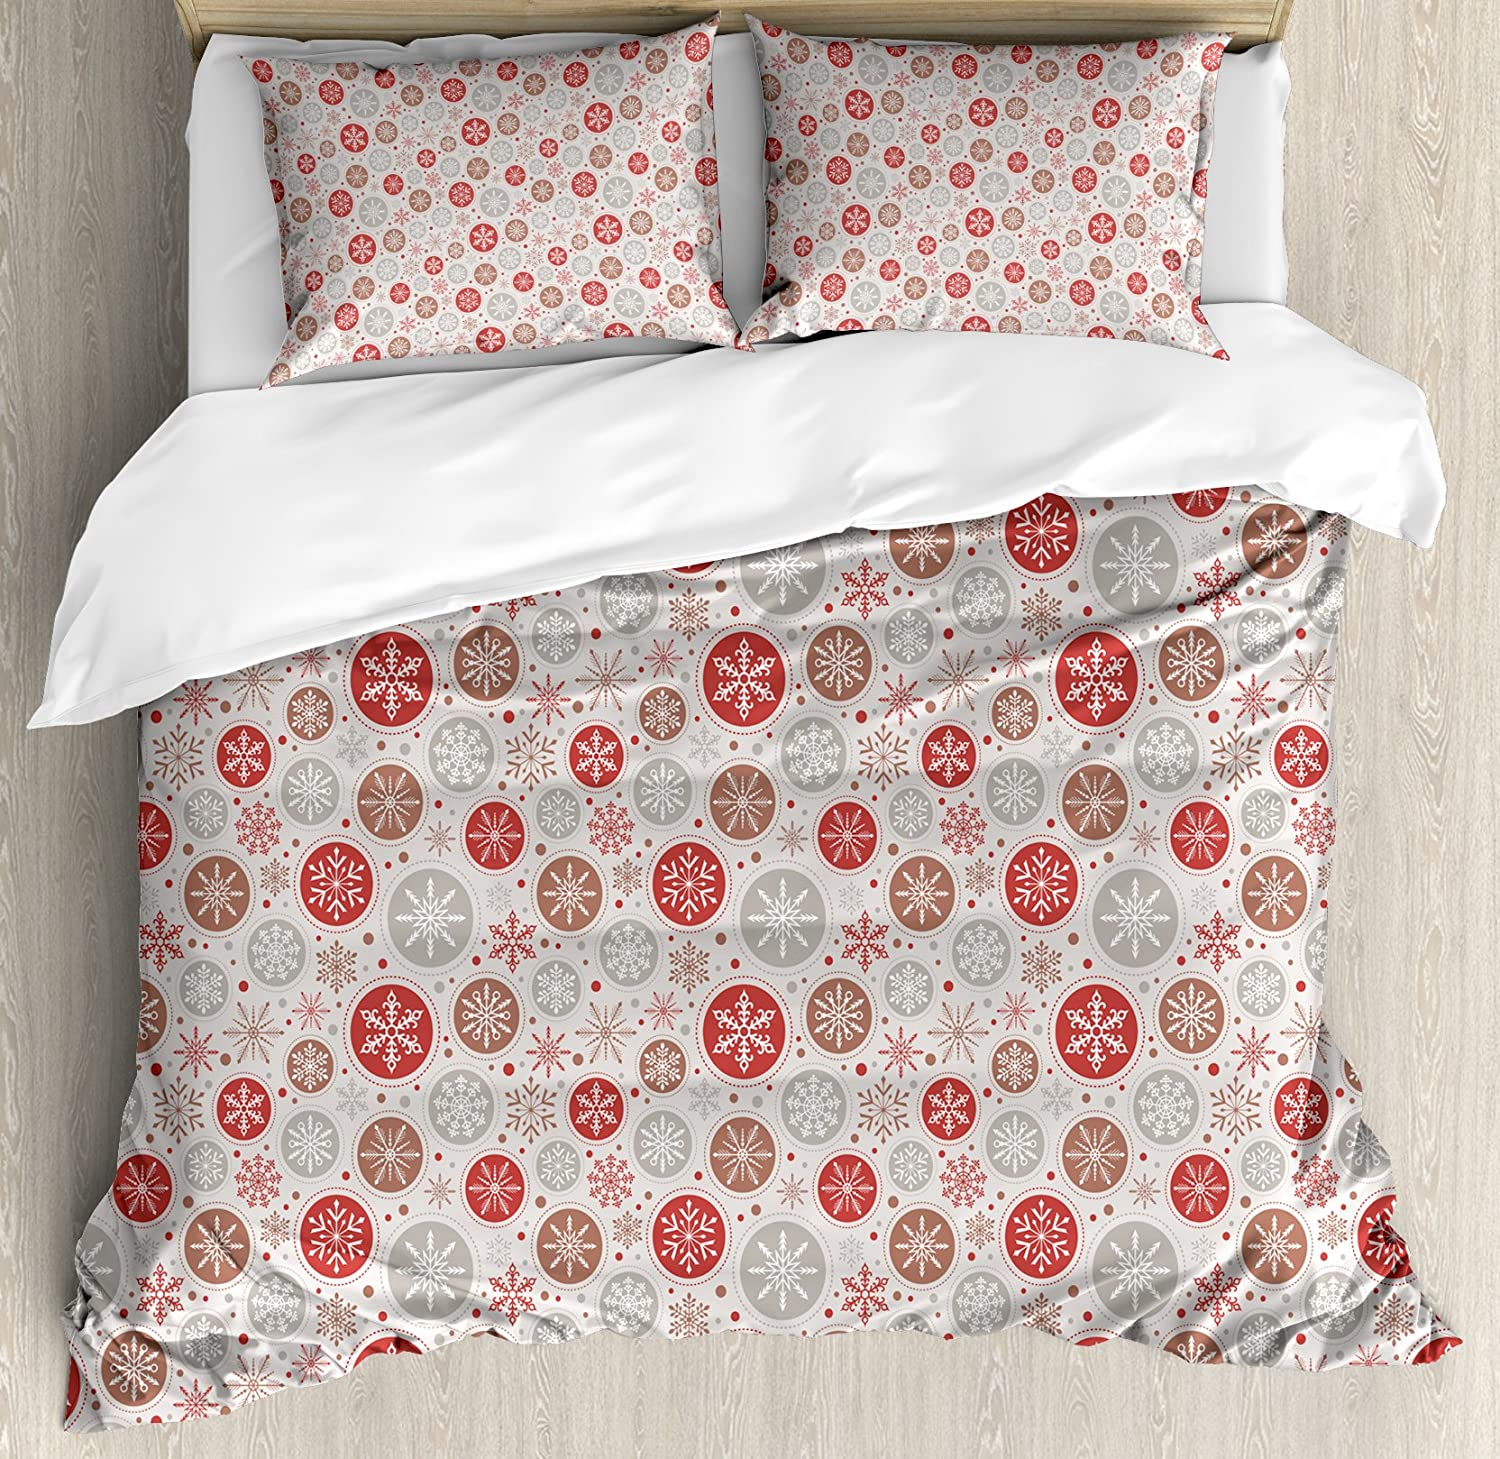 Ambesonne Christmas Duvet Cover Set, Ornate Snowflakes Pattern in Circles Dots Winter Themed Old Fashioned Print, Decorative 3 Piece Bedding Set with 2 Pillow Shams, King Size, Grey Ruby